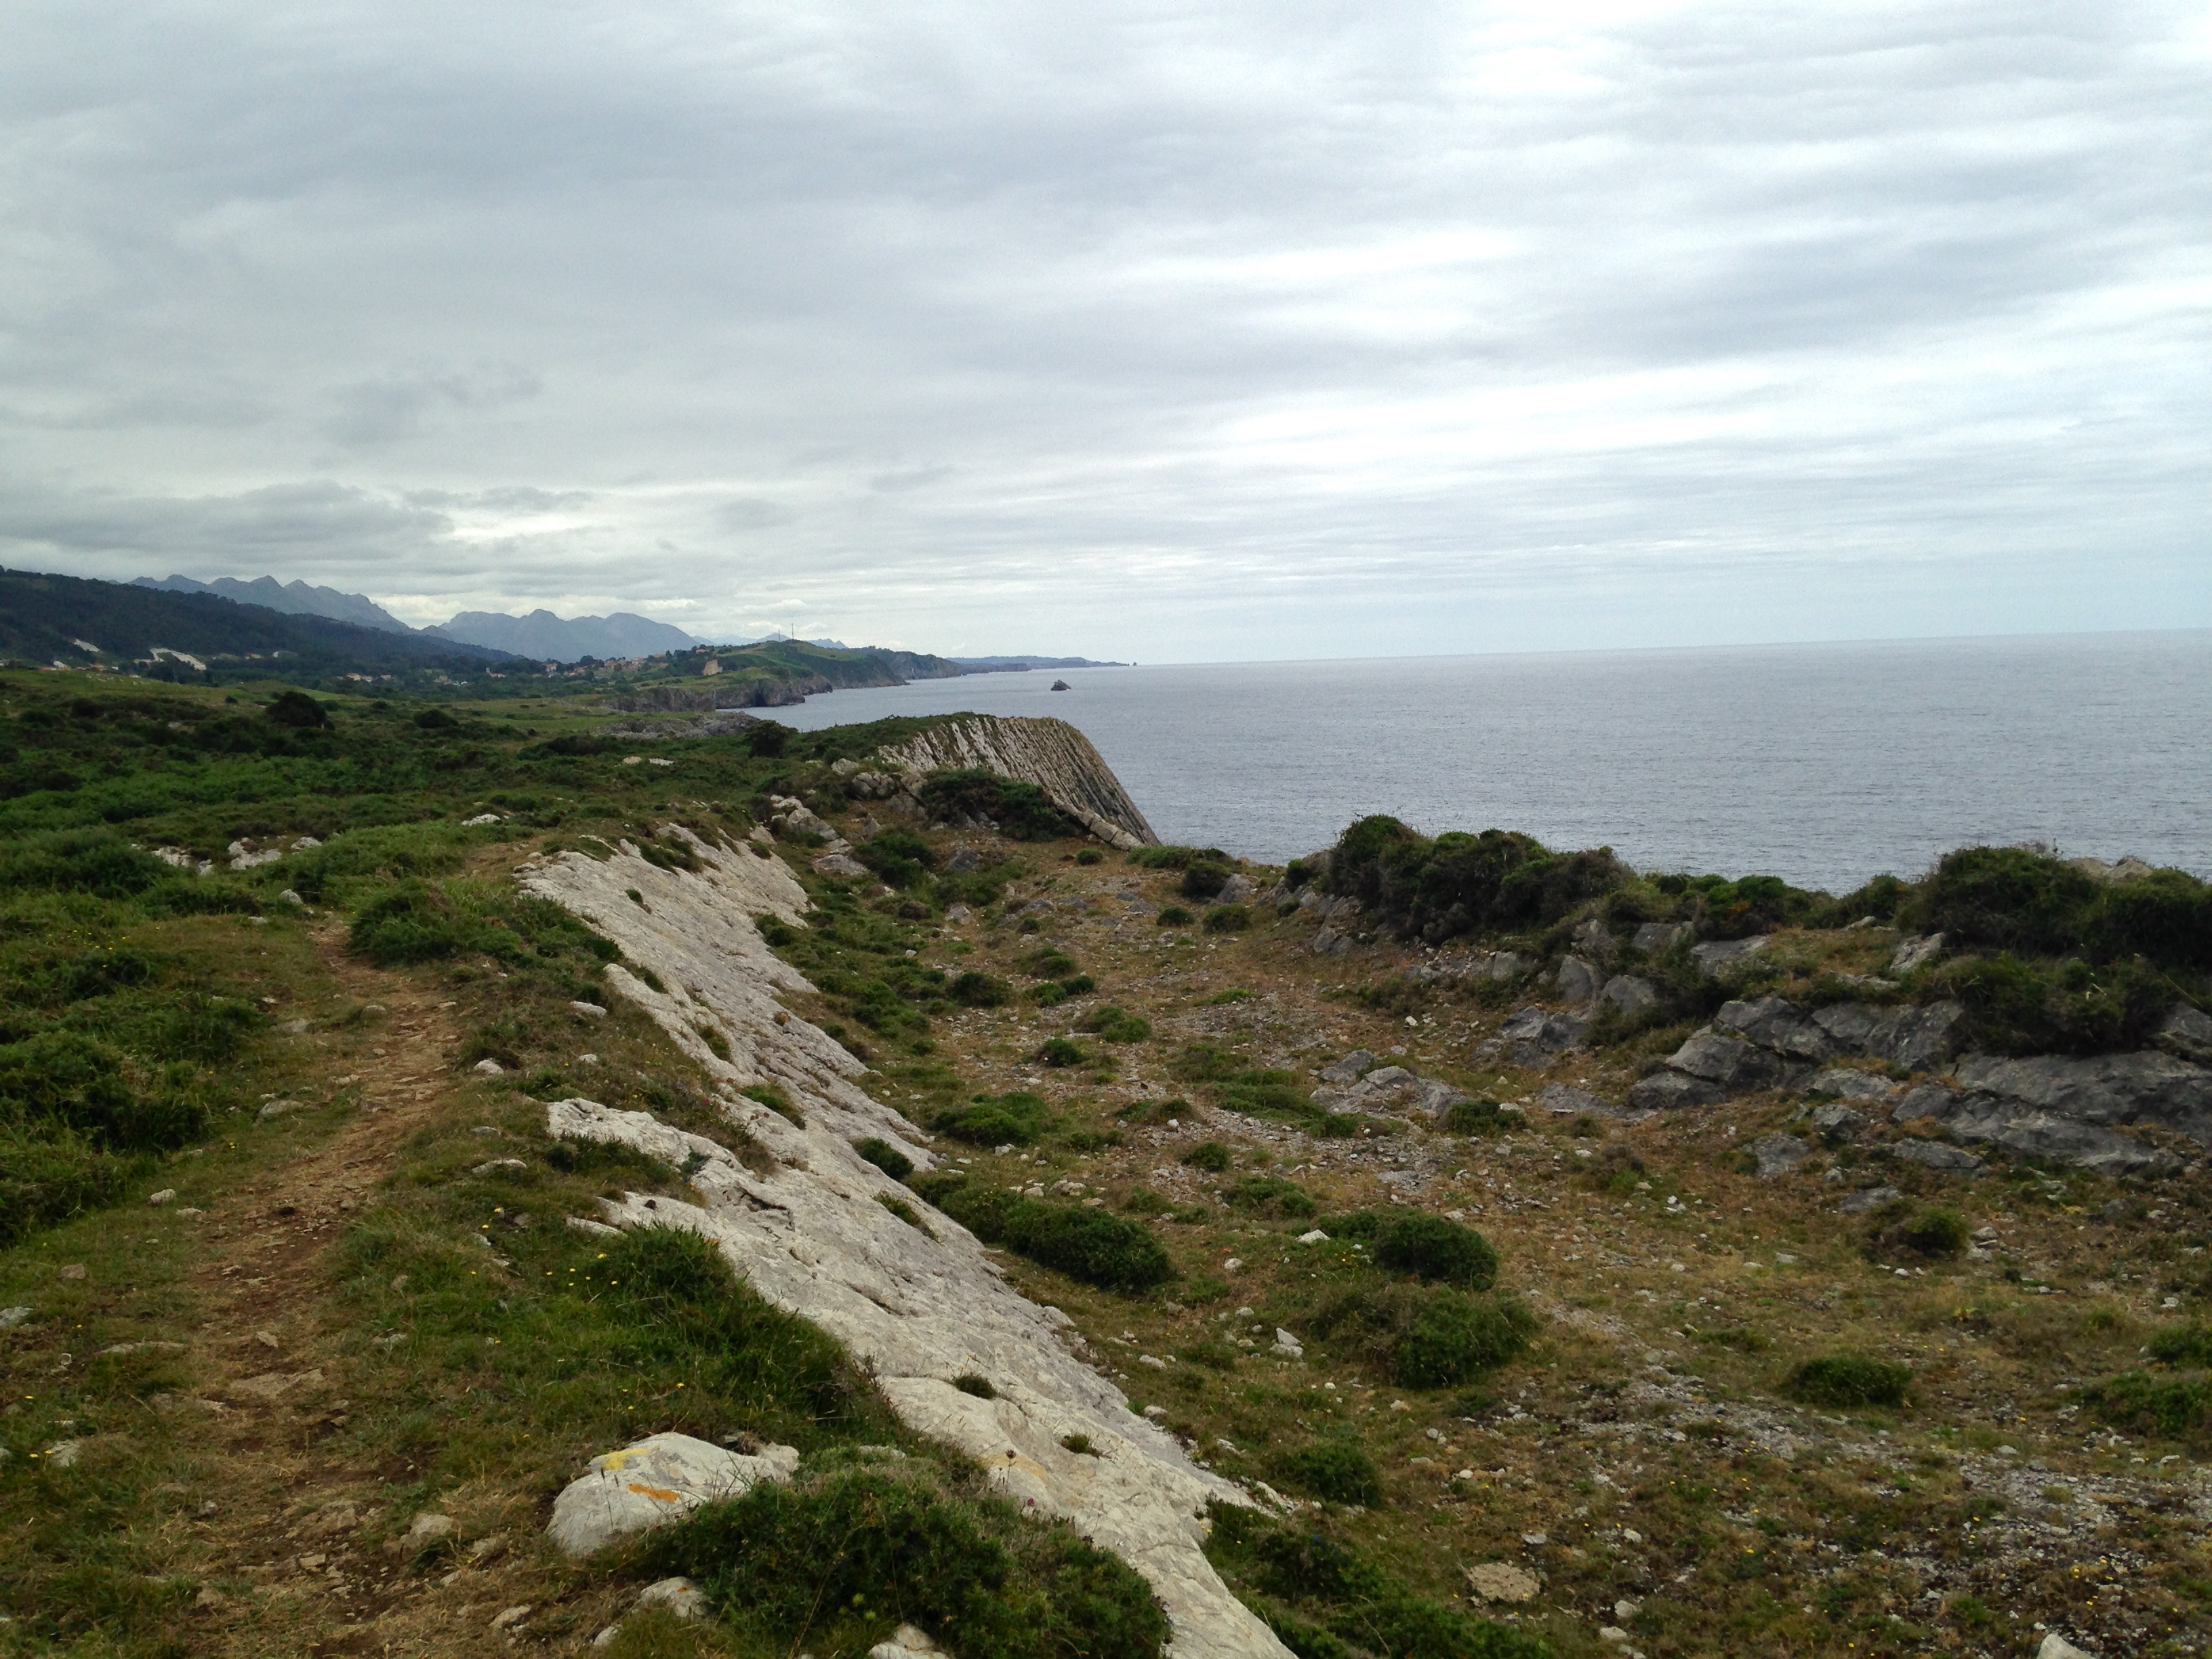 Walk to Pendueles, Camino del Norte